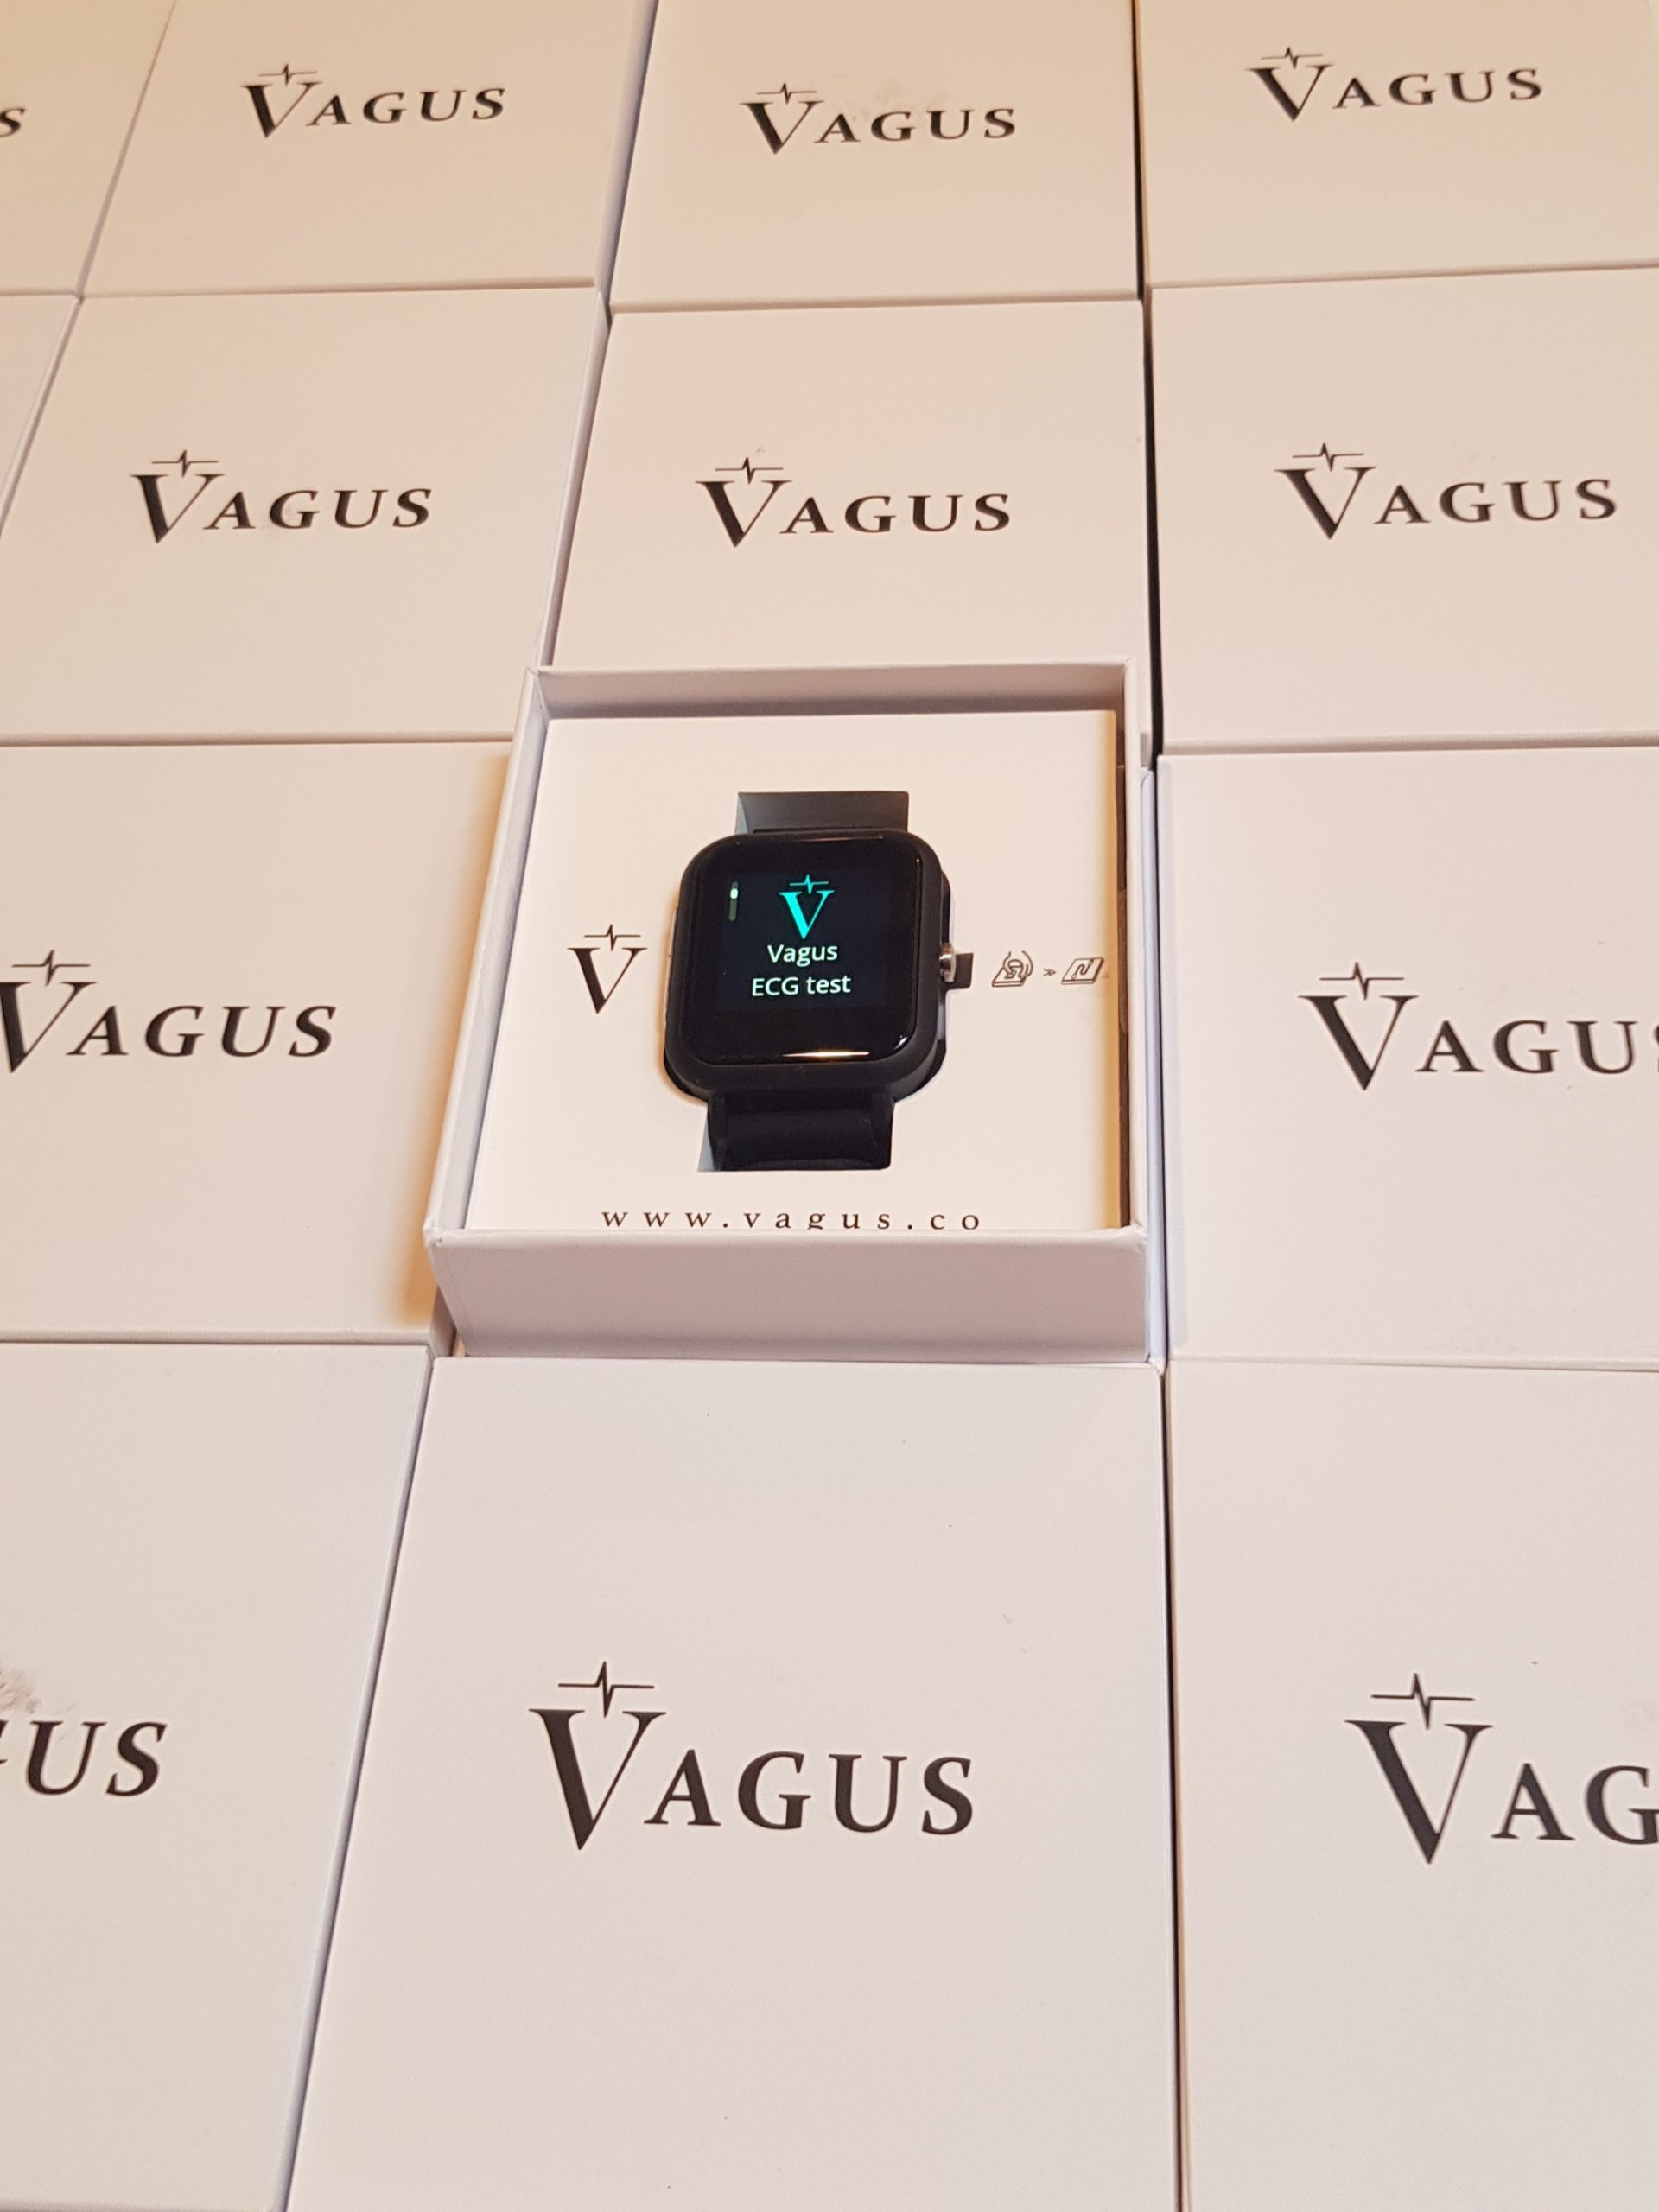 We now again have watches available for prompt shipment